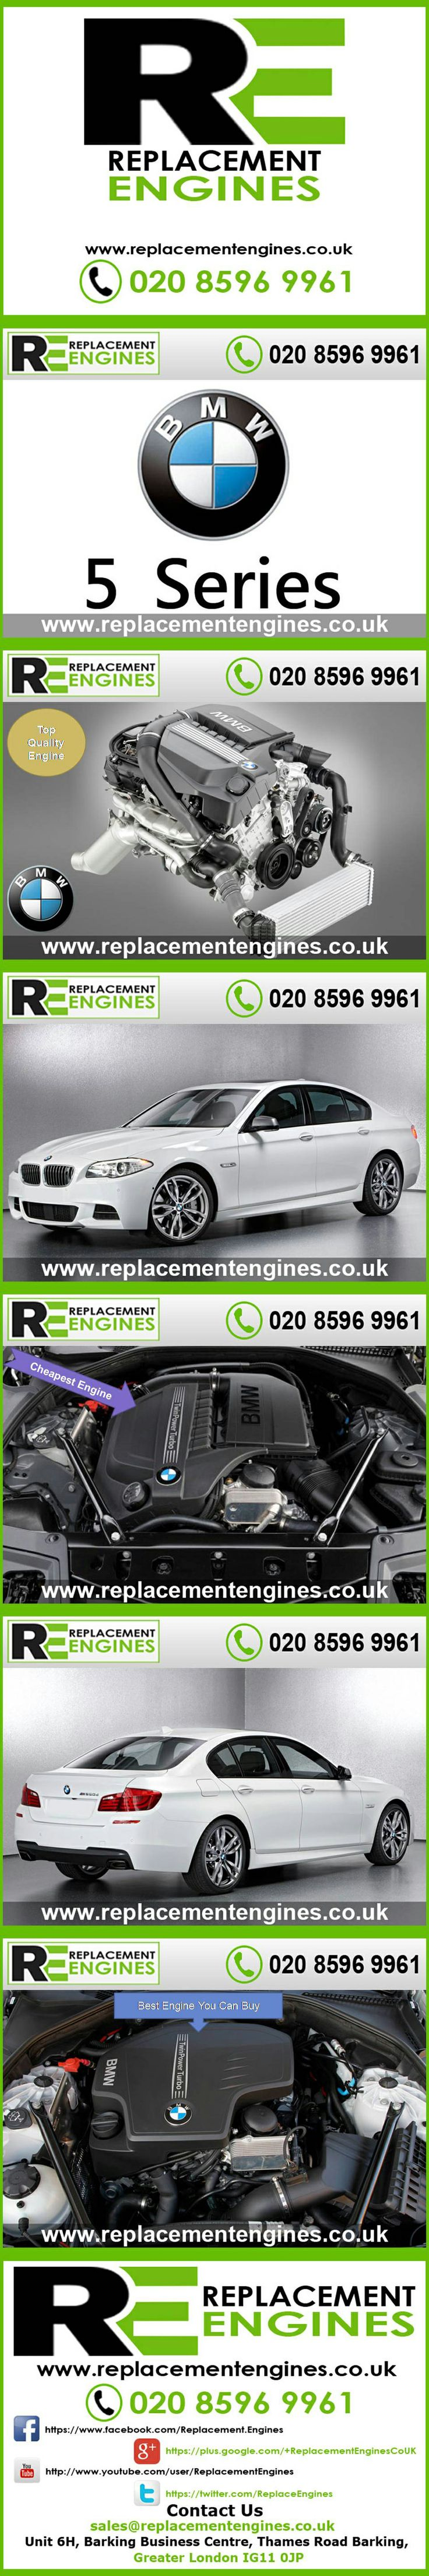 BMW 5 Series Engines for sale at the cheapest prices, we have low mileage used & reconditioned engines in stock now, ready to be delivered to anywhere in the UK or overseas, visit Replacement Engines website here.  http://www.replacementengines.co.uk/car-mk.asp?part=all-bmw-engine